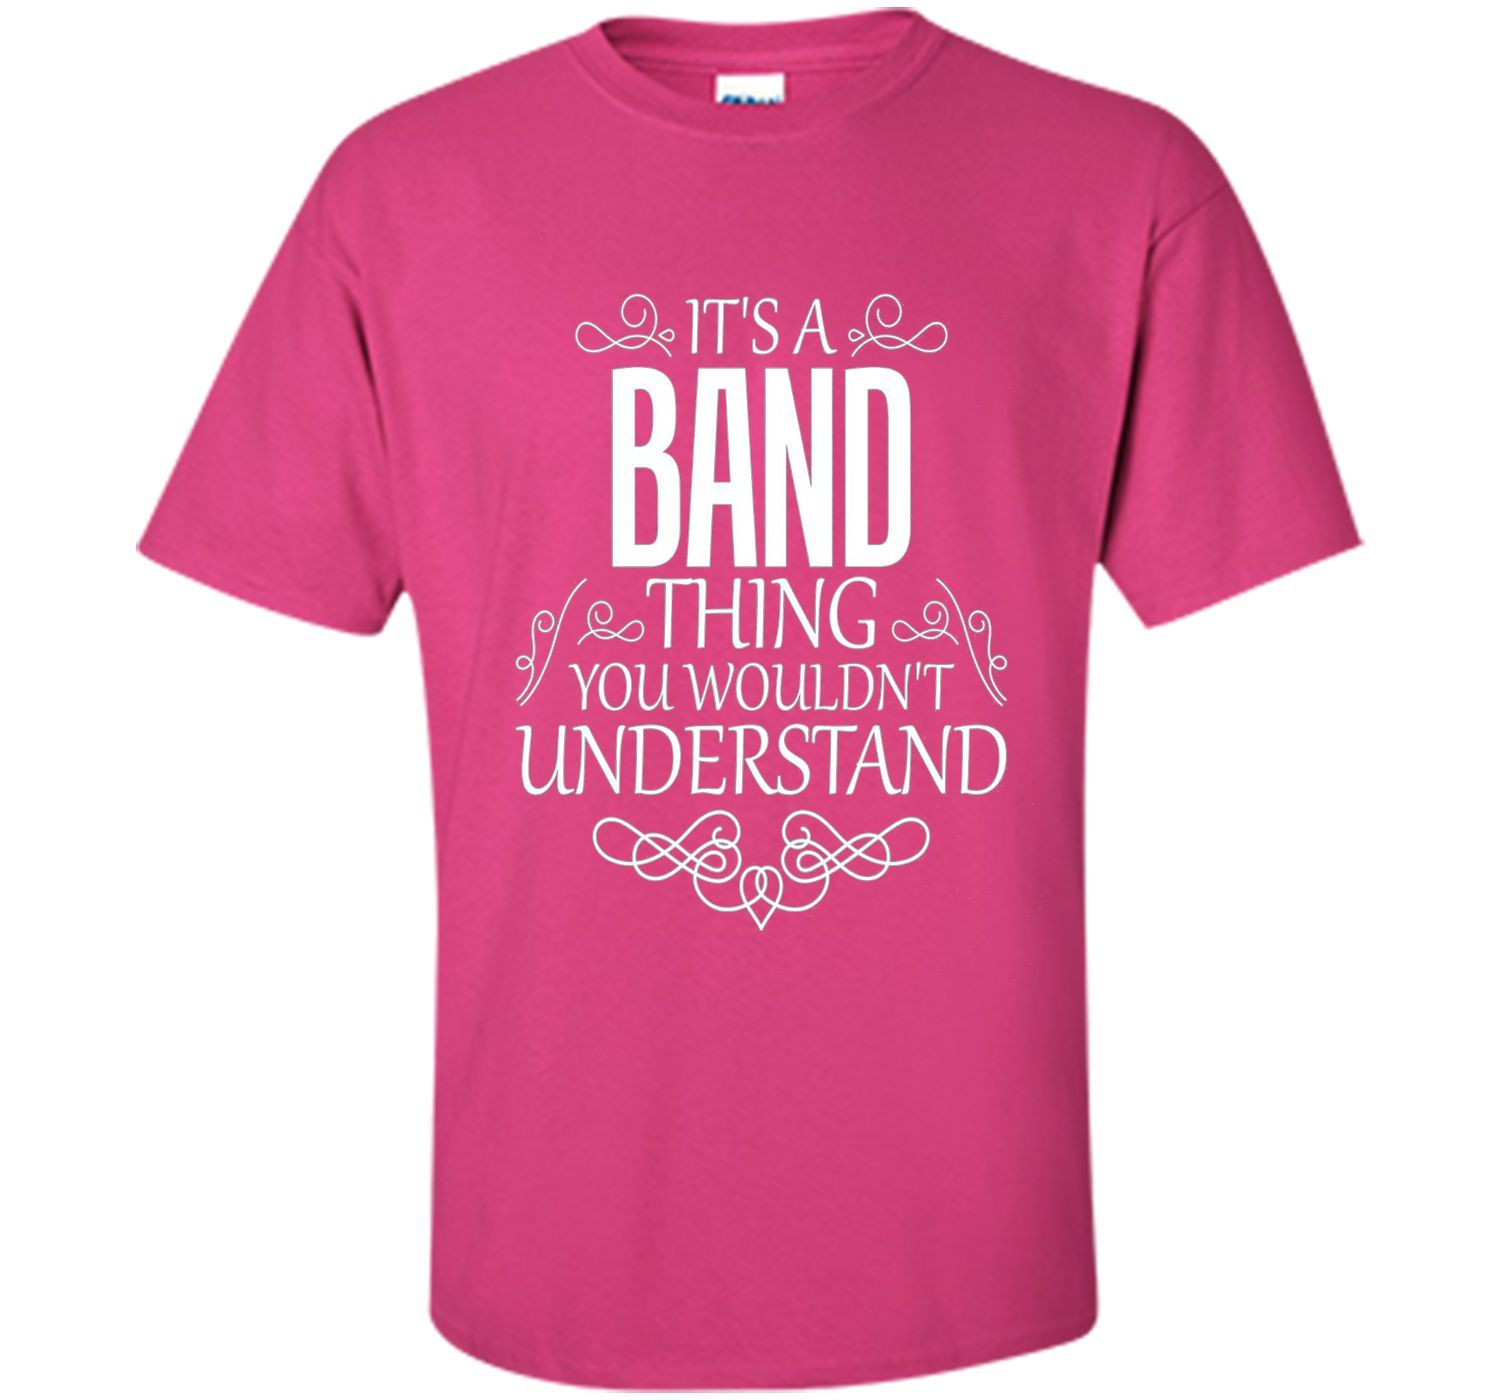 It's A Band Thing You Wouldn't Understand T-Shirt